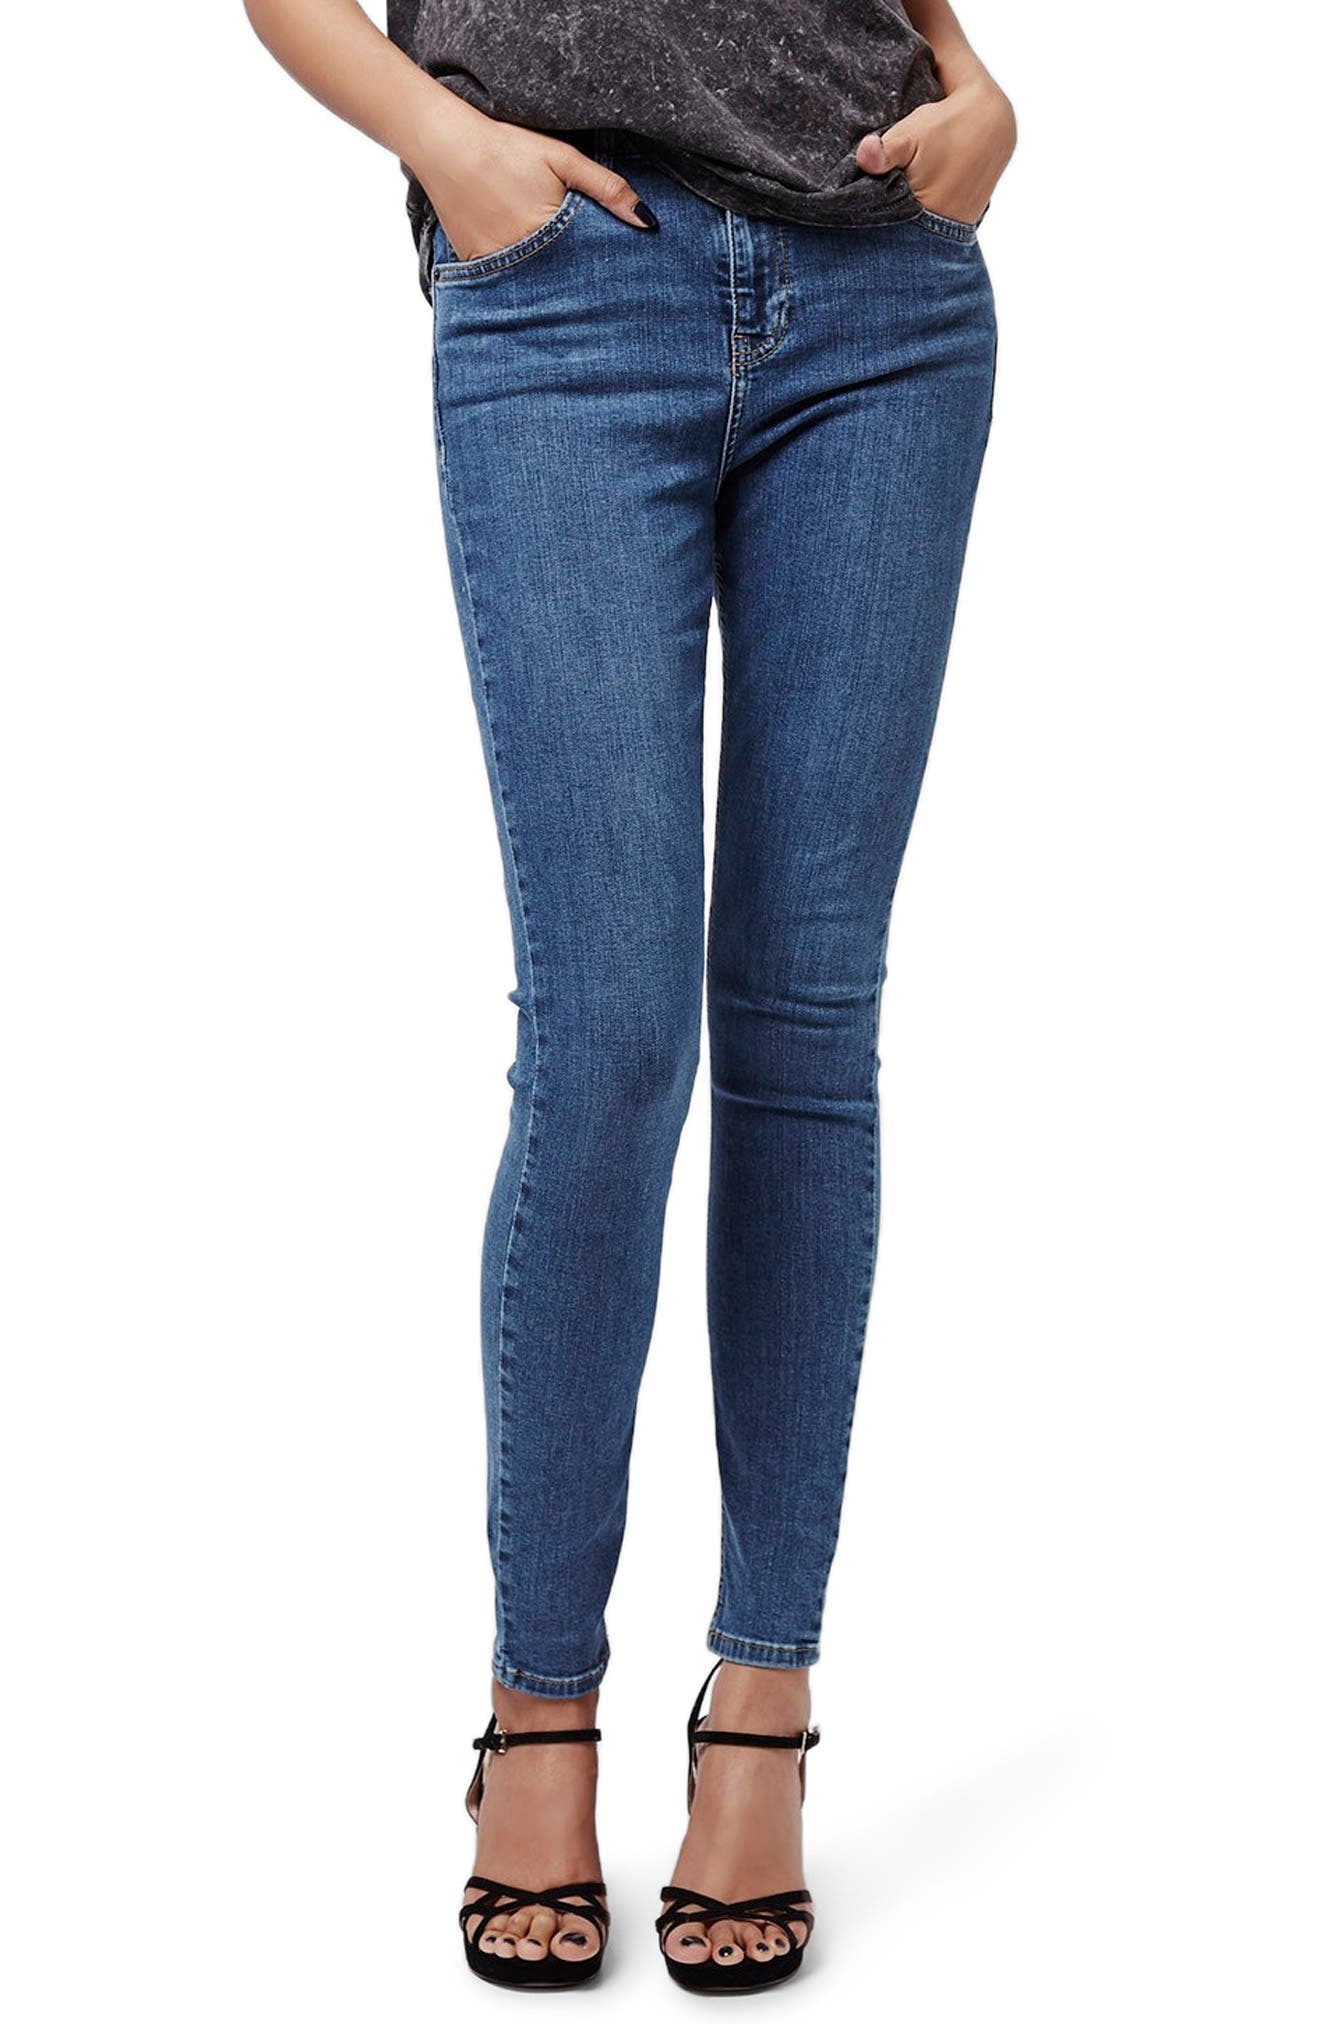 TOPSHOP, Jamie High Waist Skinny Jeans, Main thumbnail 1, color, MID BLUE